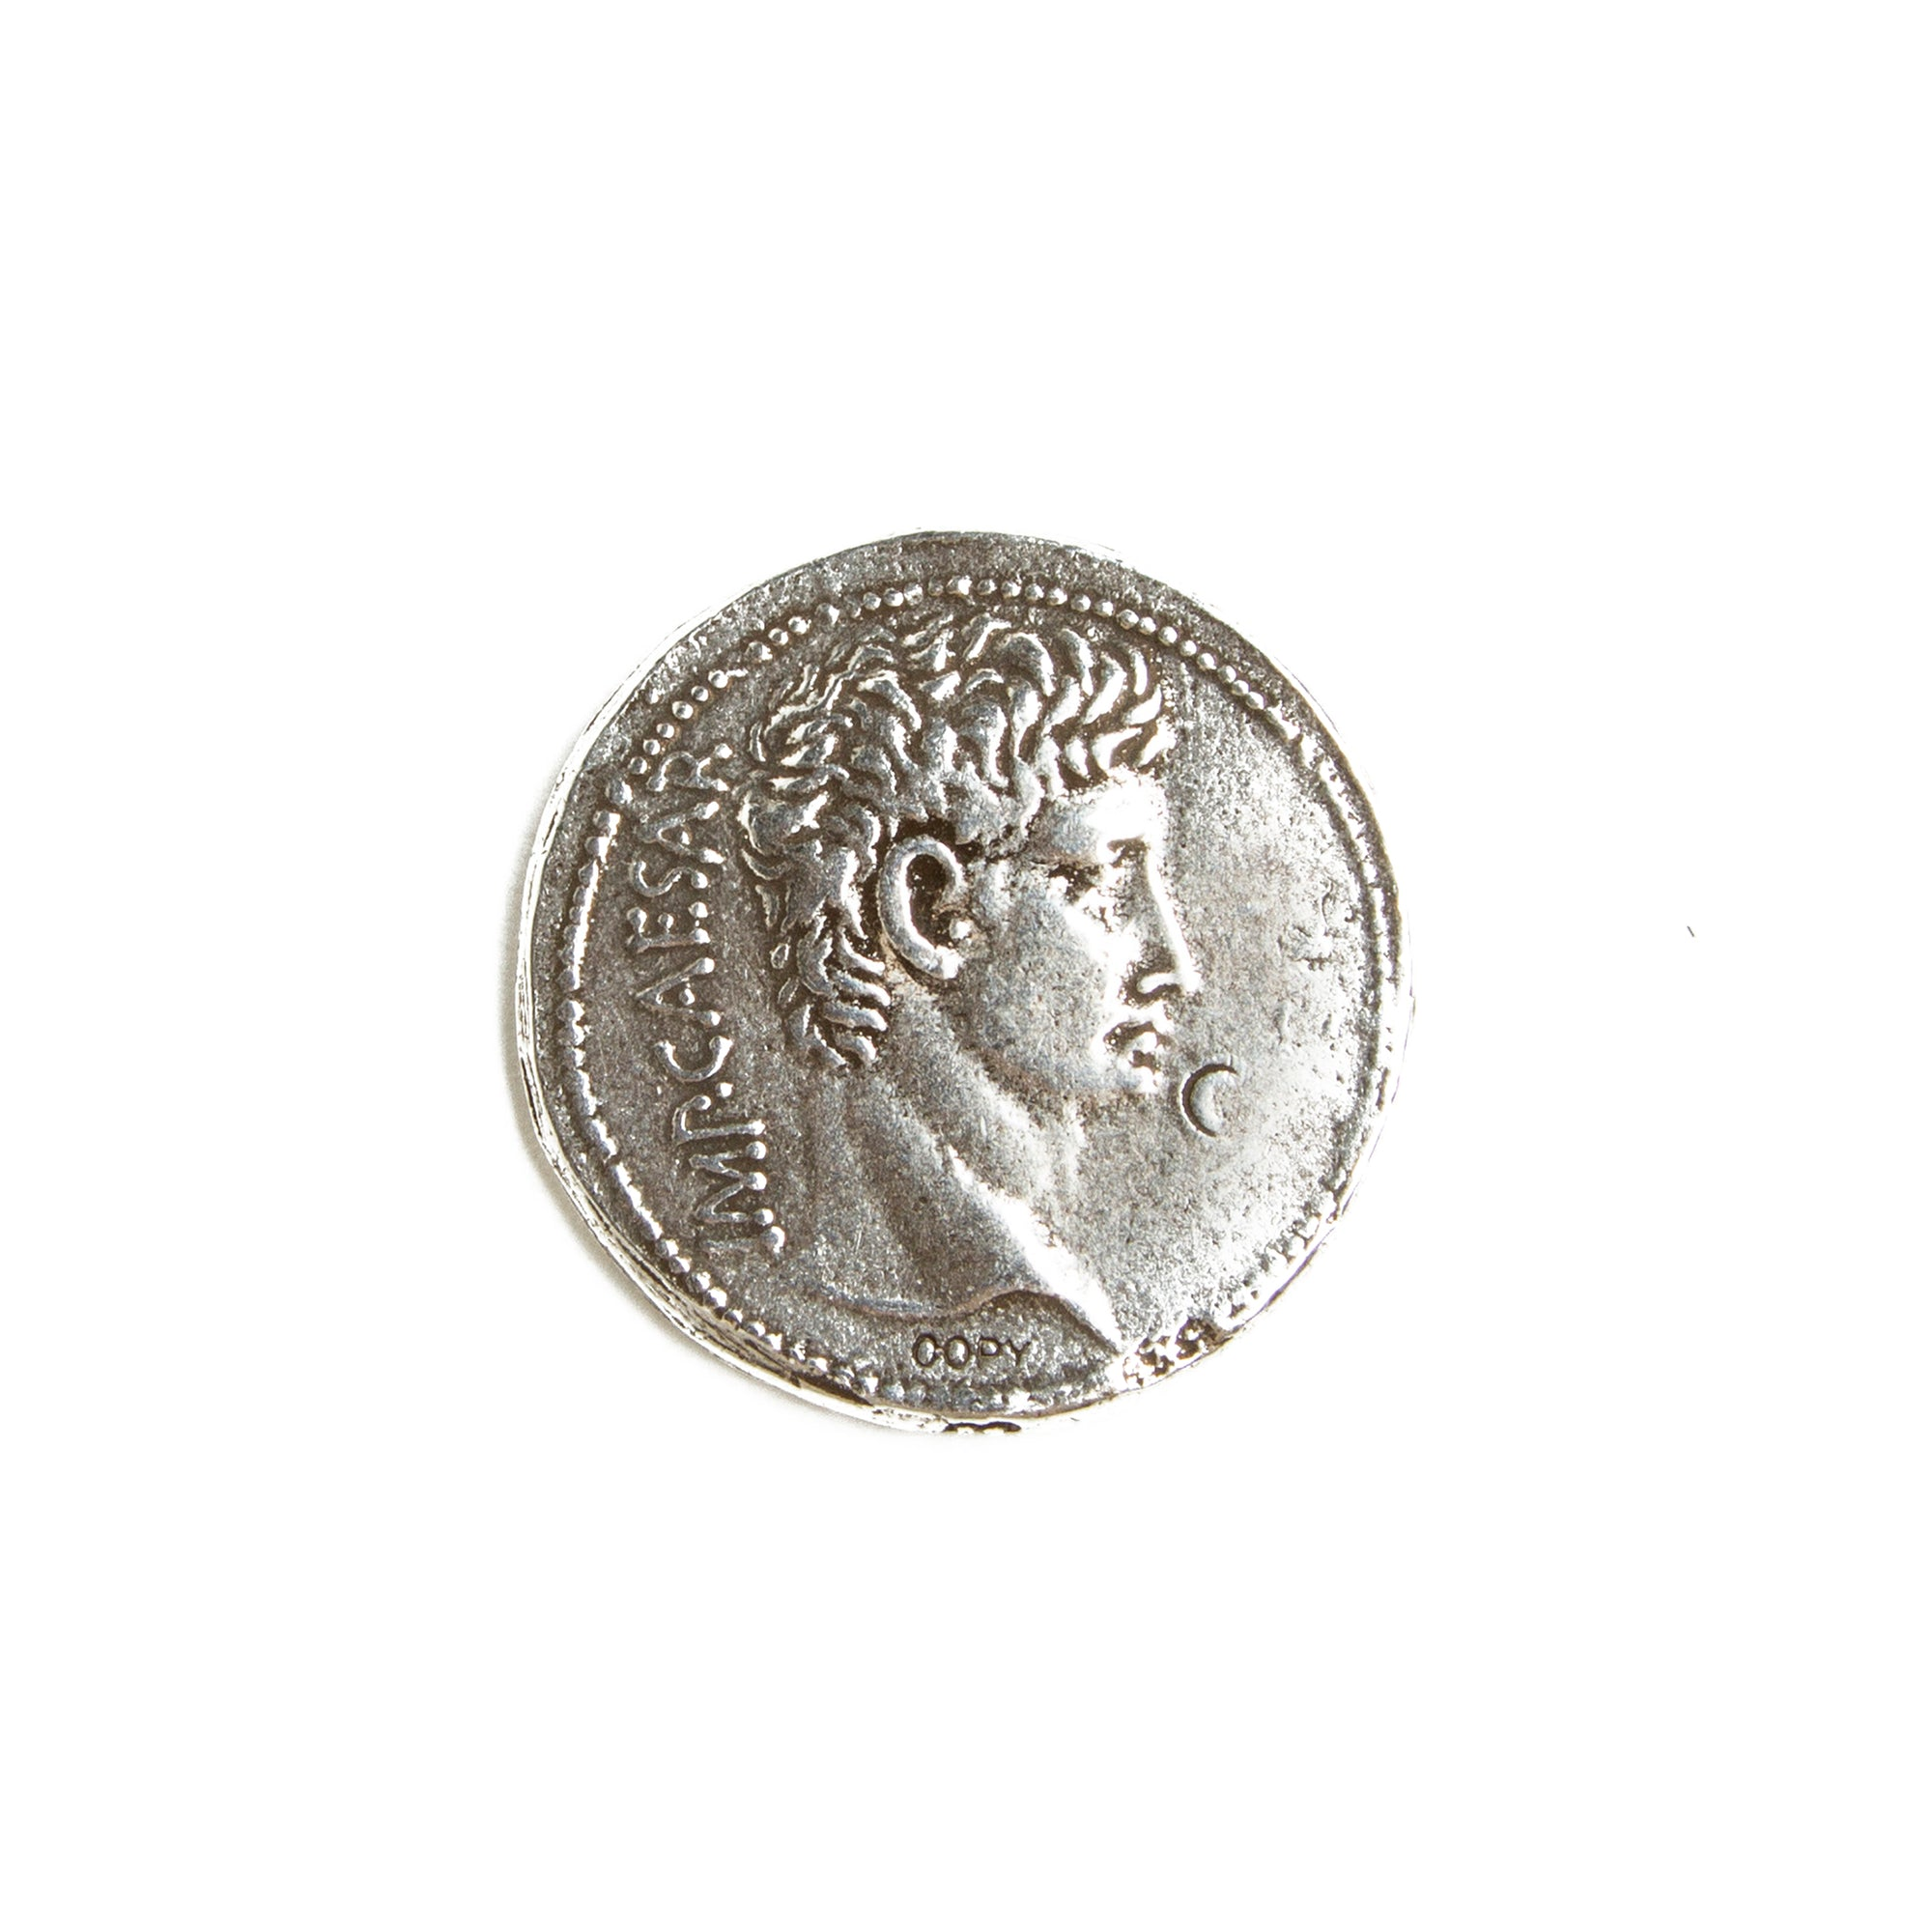 Roman Coin Reproduction - Augustus/Sphinx | Getty Store